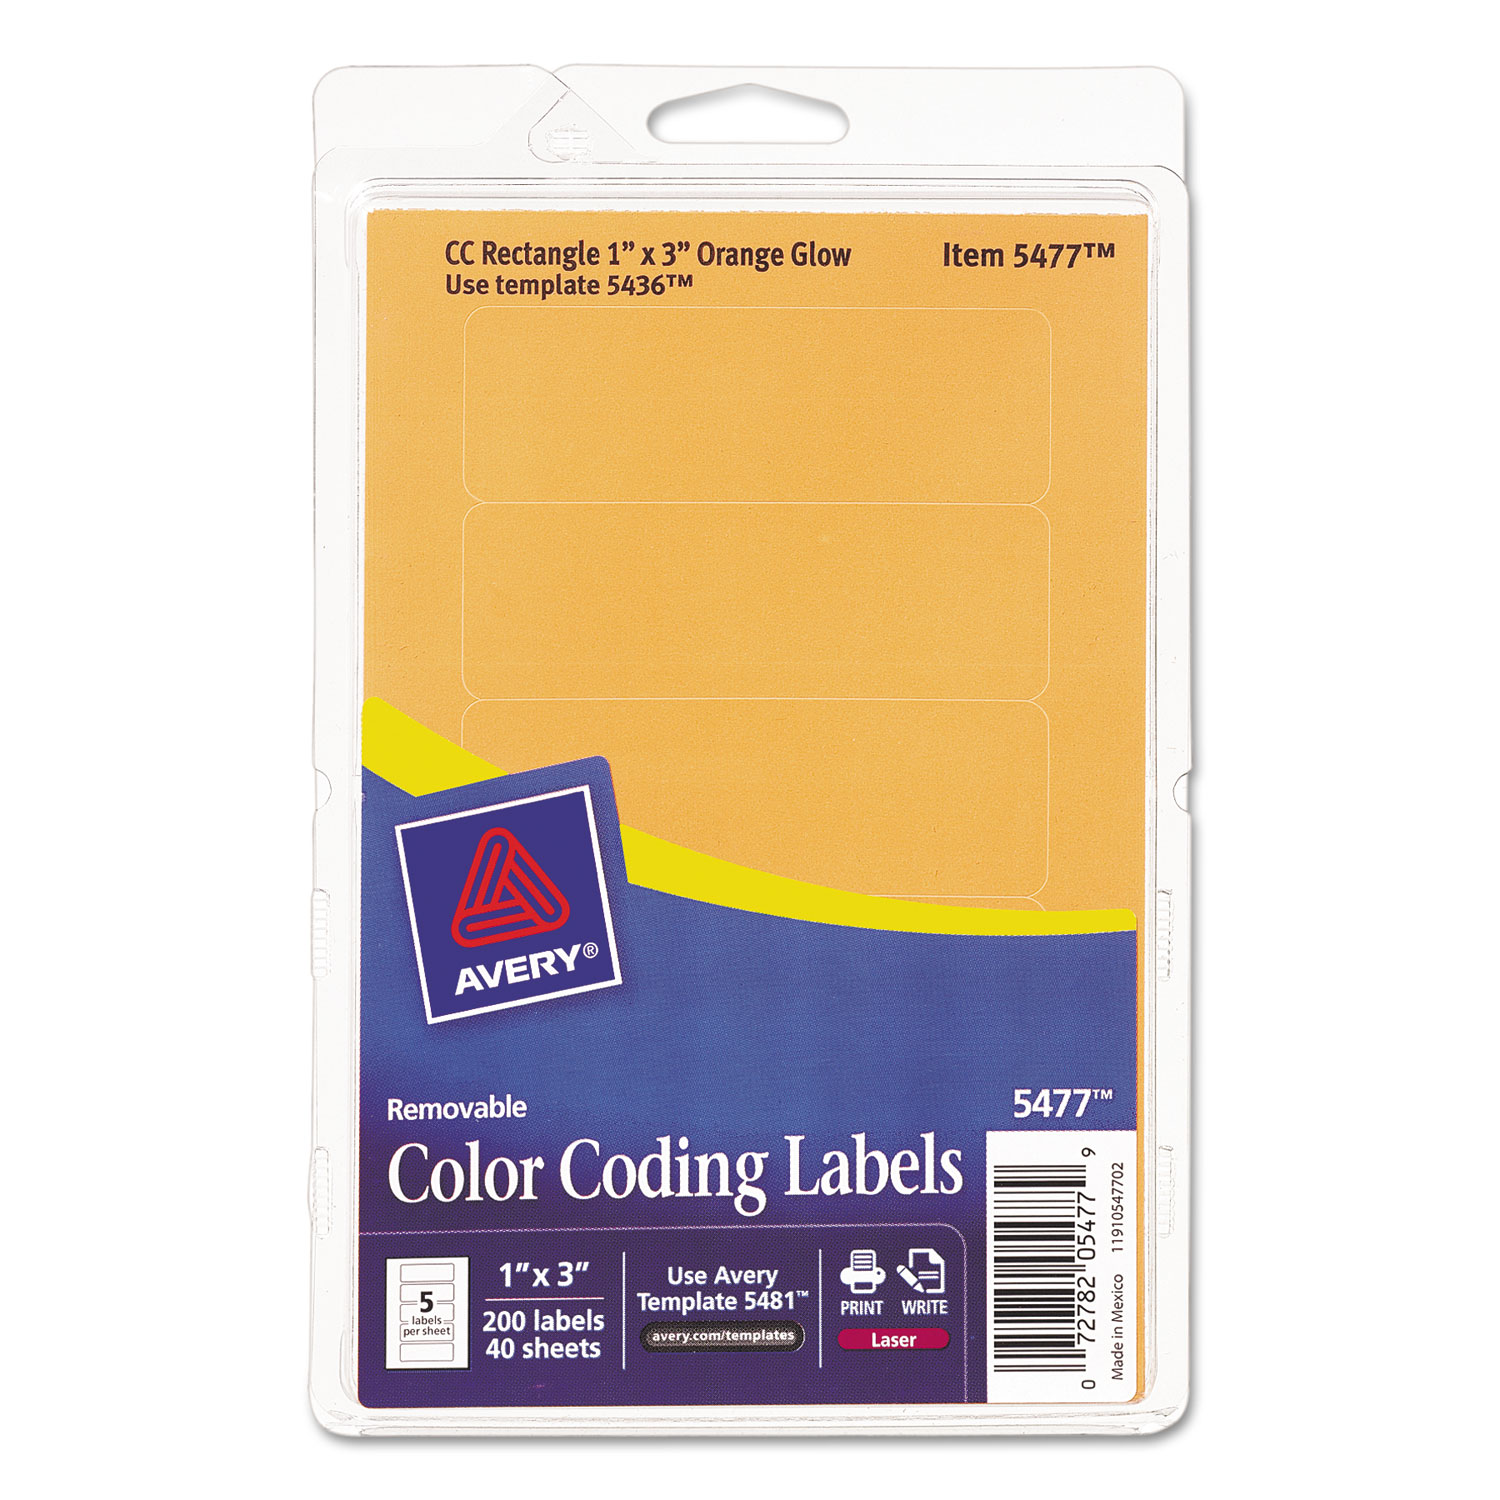 Printable Removable Color Coding Labels By AveryR AVE05477